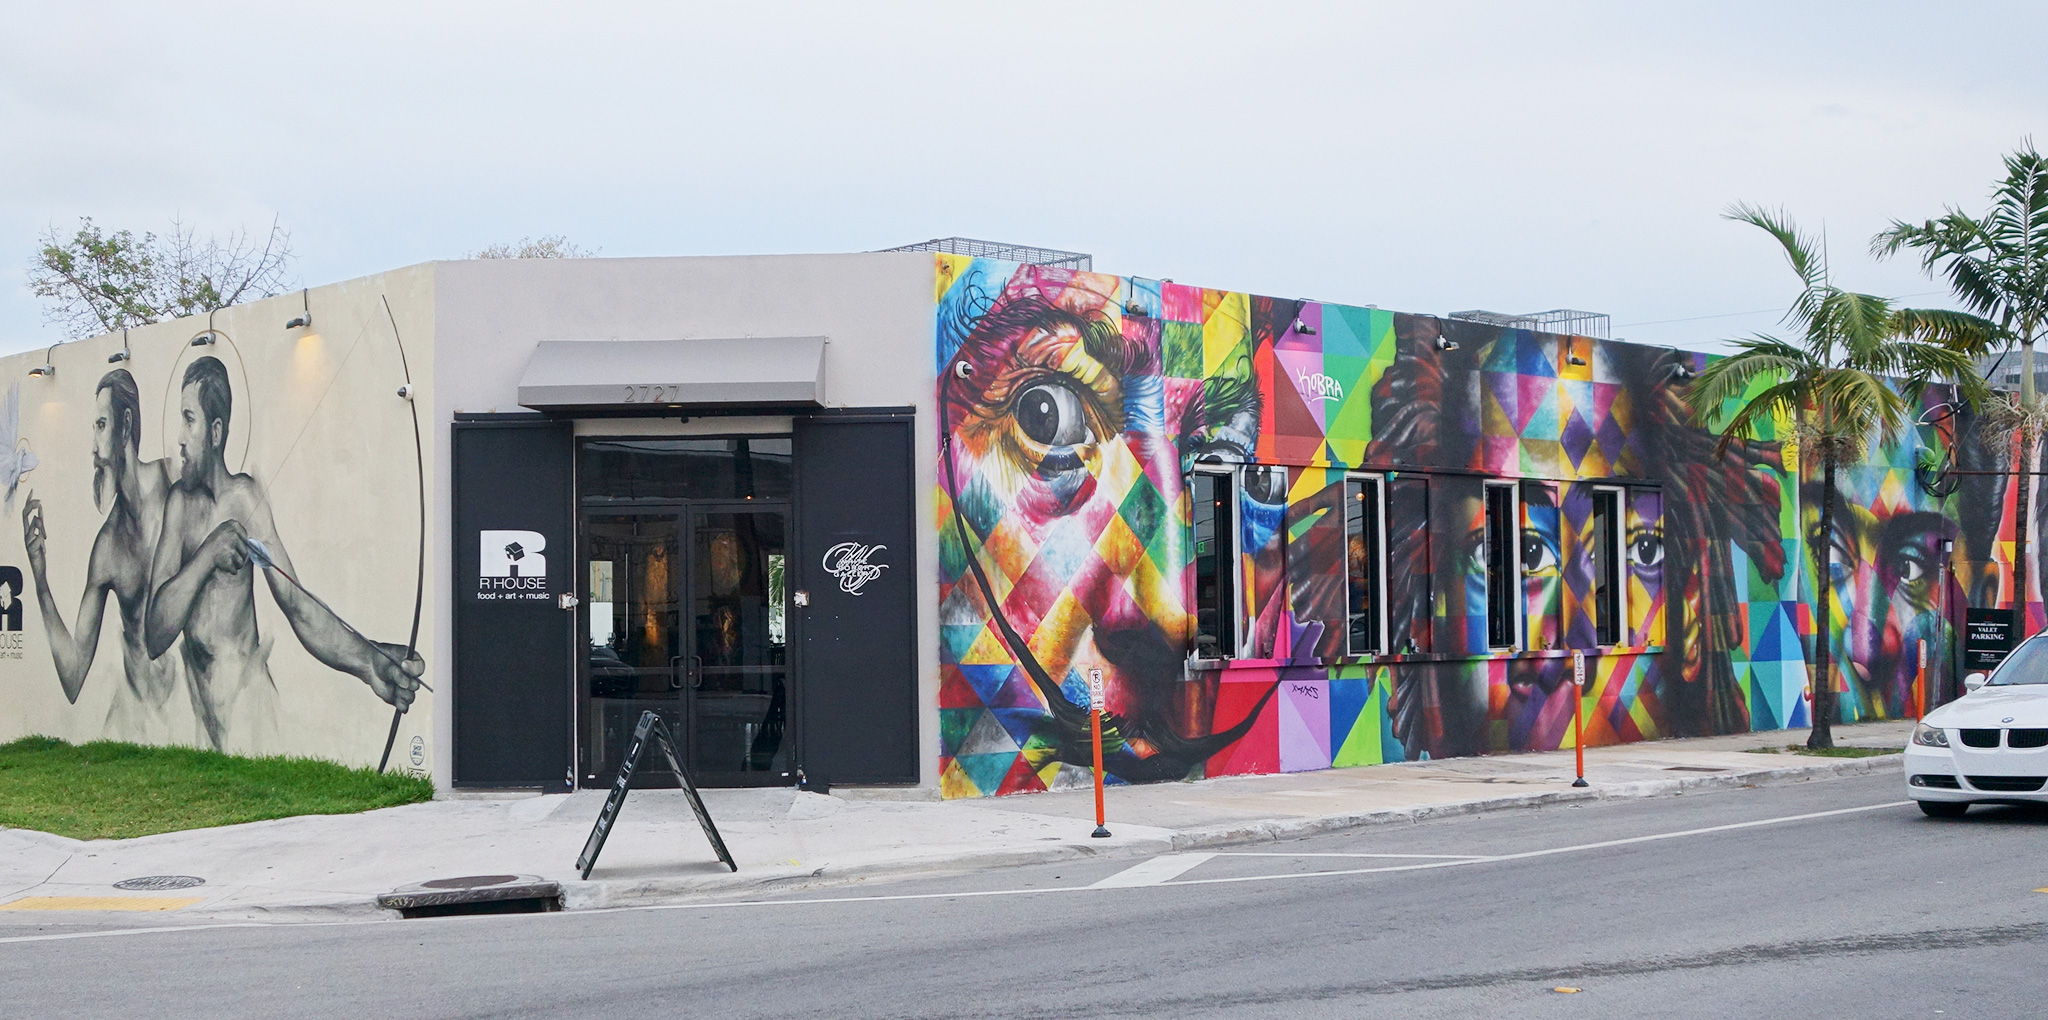 R House Wynwood Image